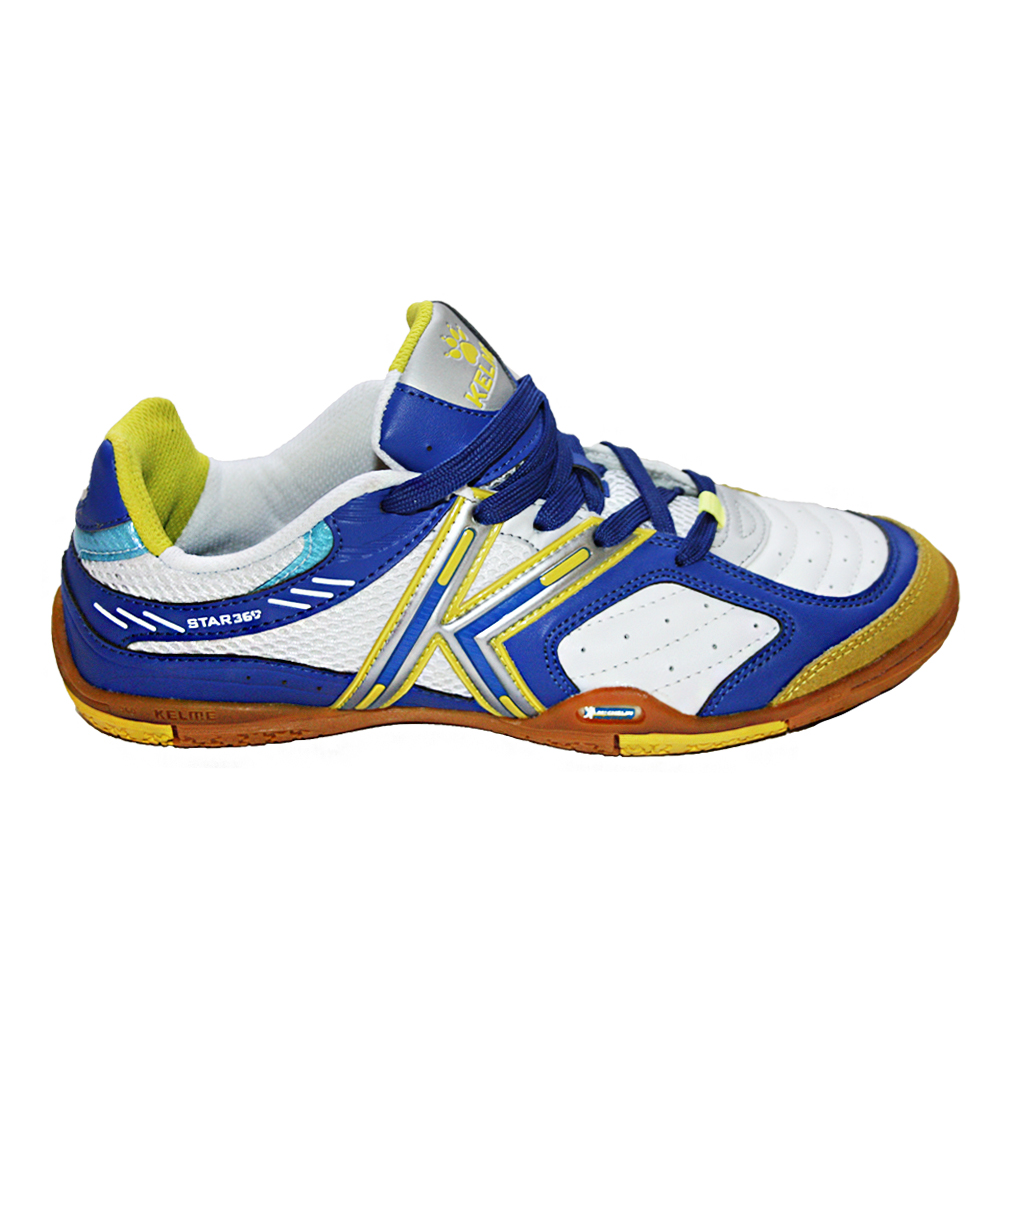 Футзалки Kelme Michelin Star 360 55274-704